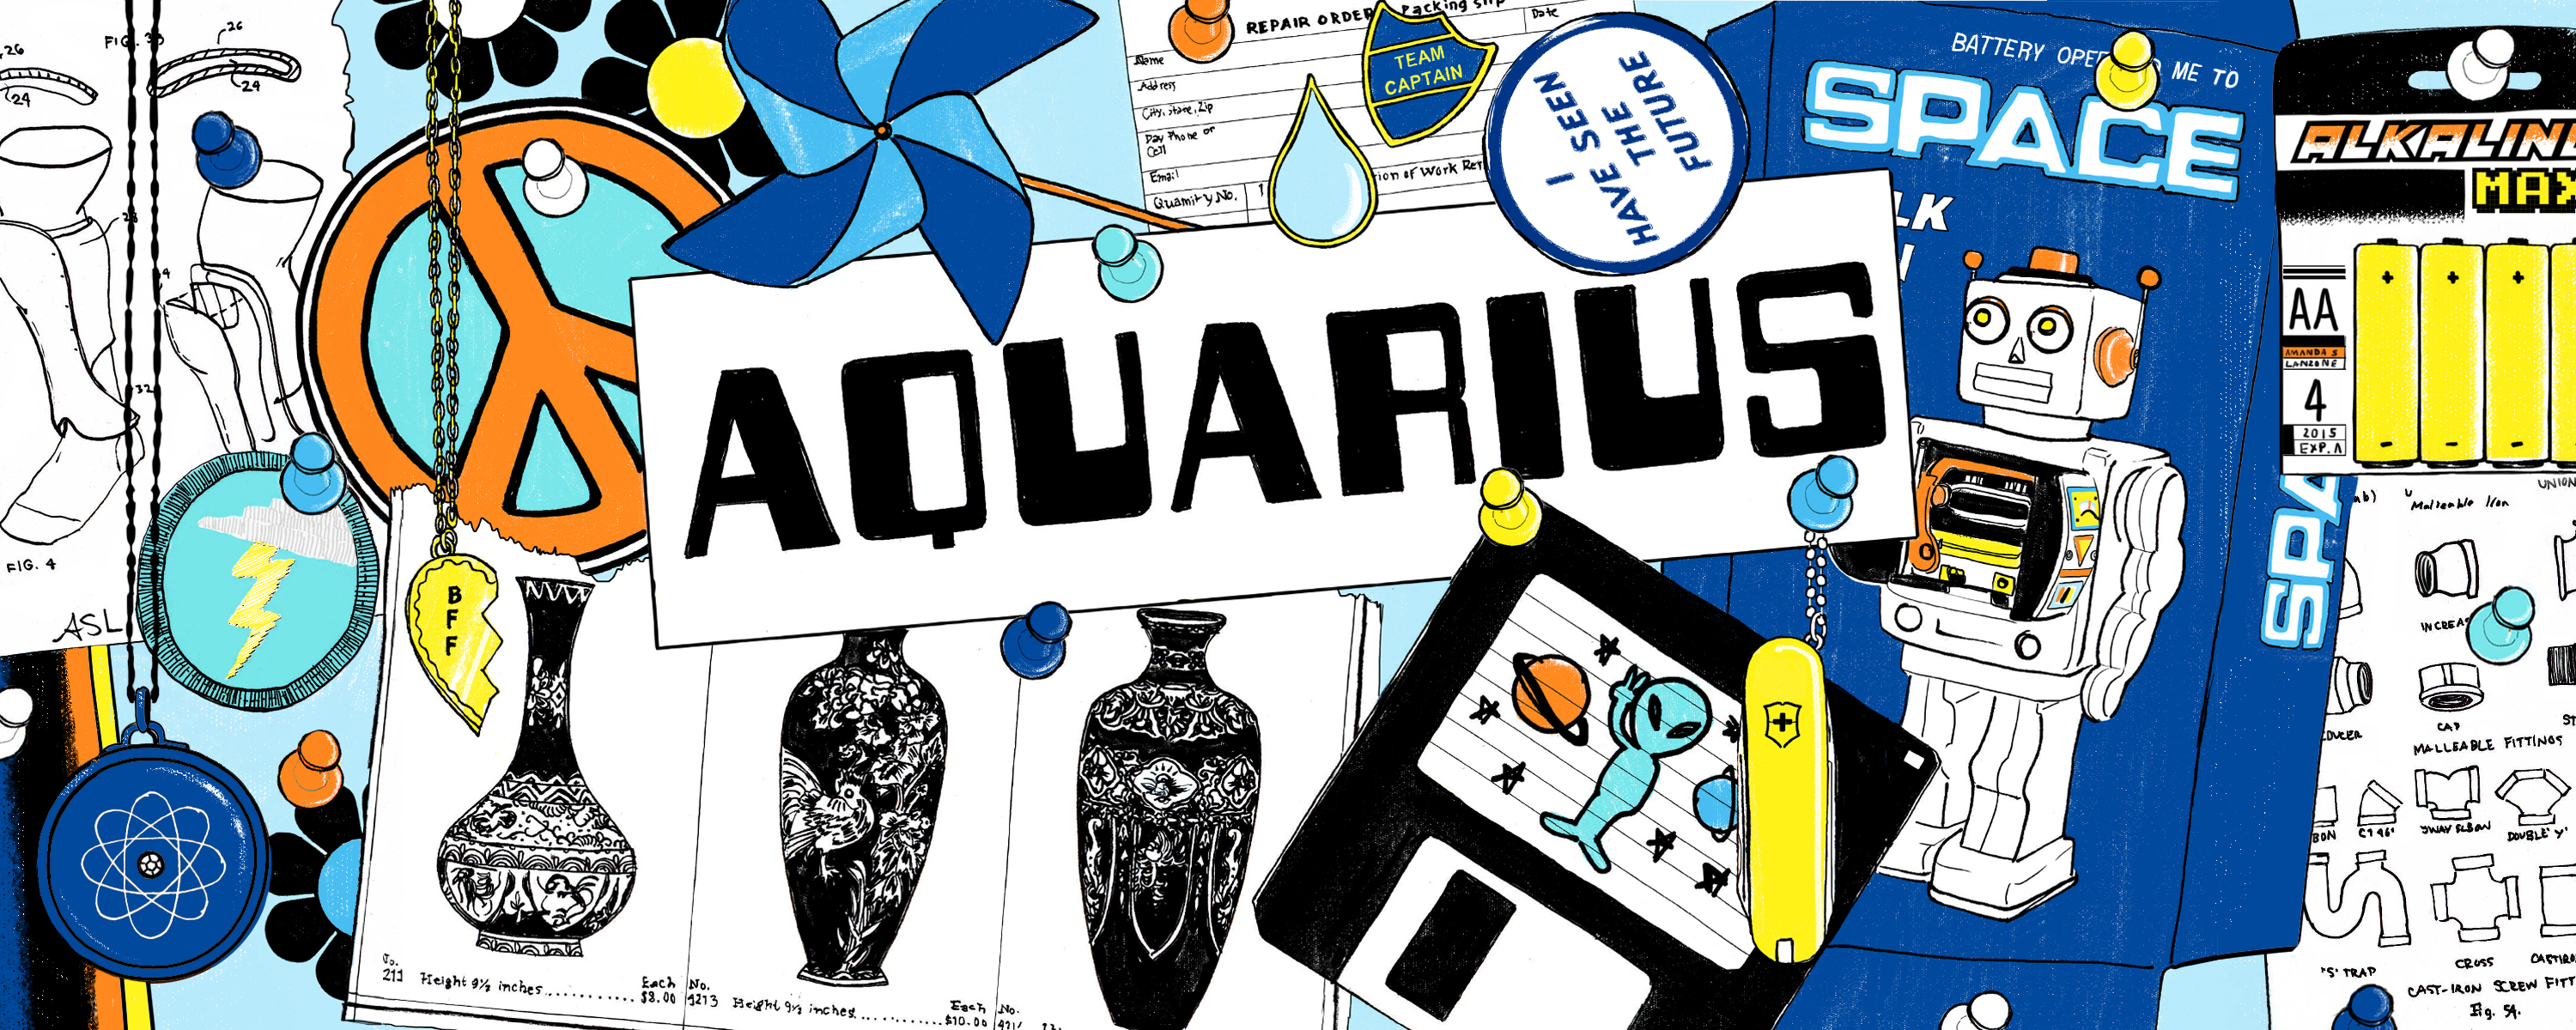 aquarius horoscope for december 25 2019